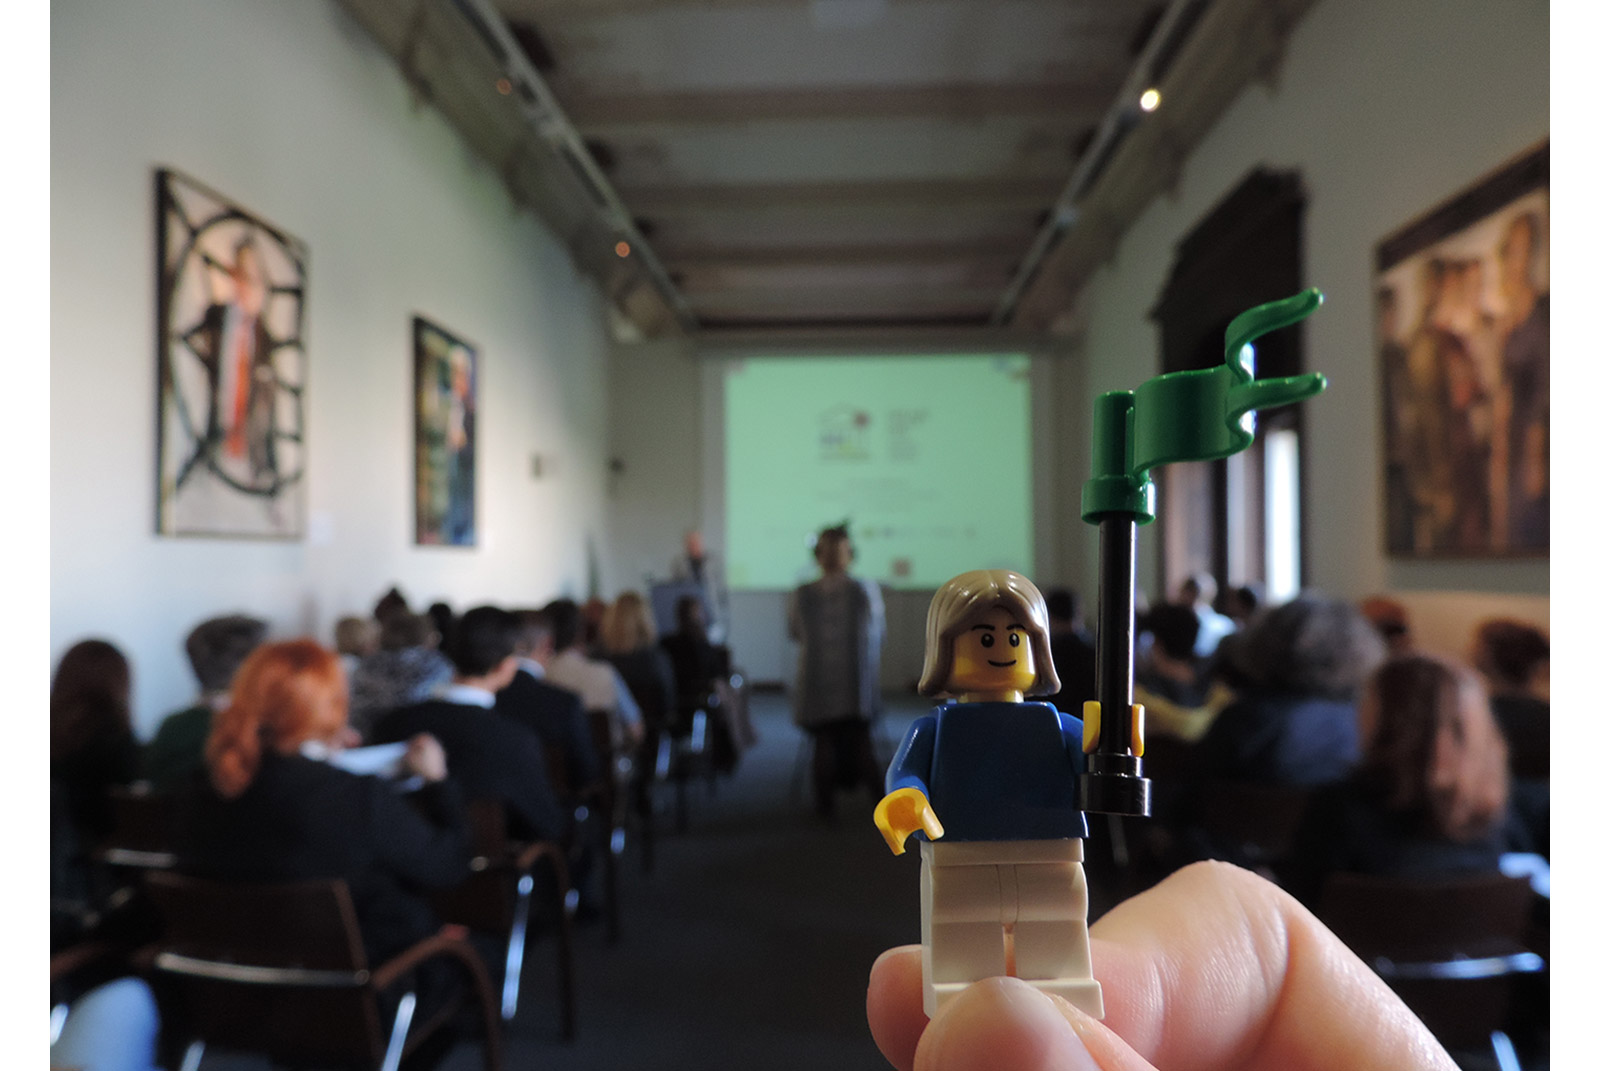 The Final Conference of HearMe Project took place on the 29th and 30th of September in Kunsthistorisches Museum in Vienna